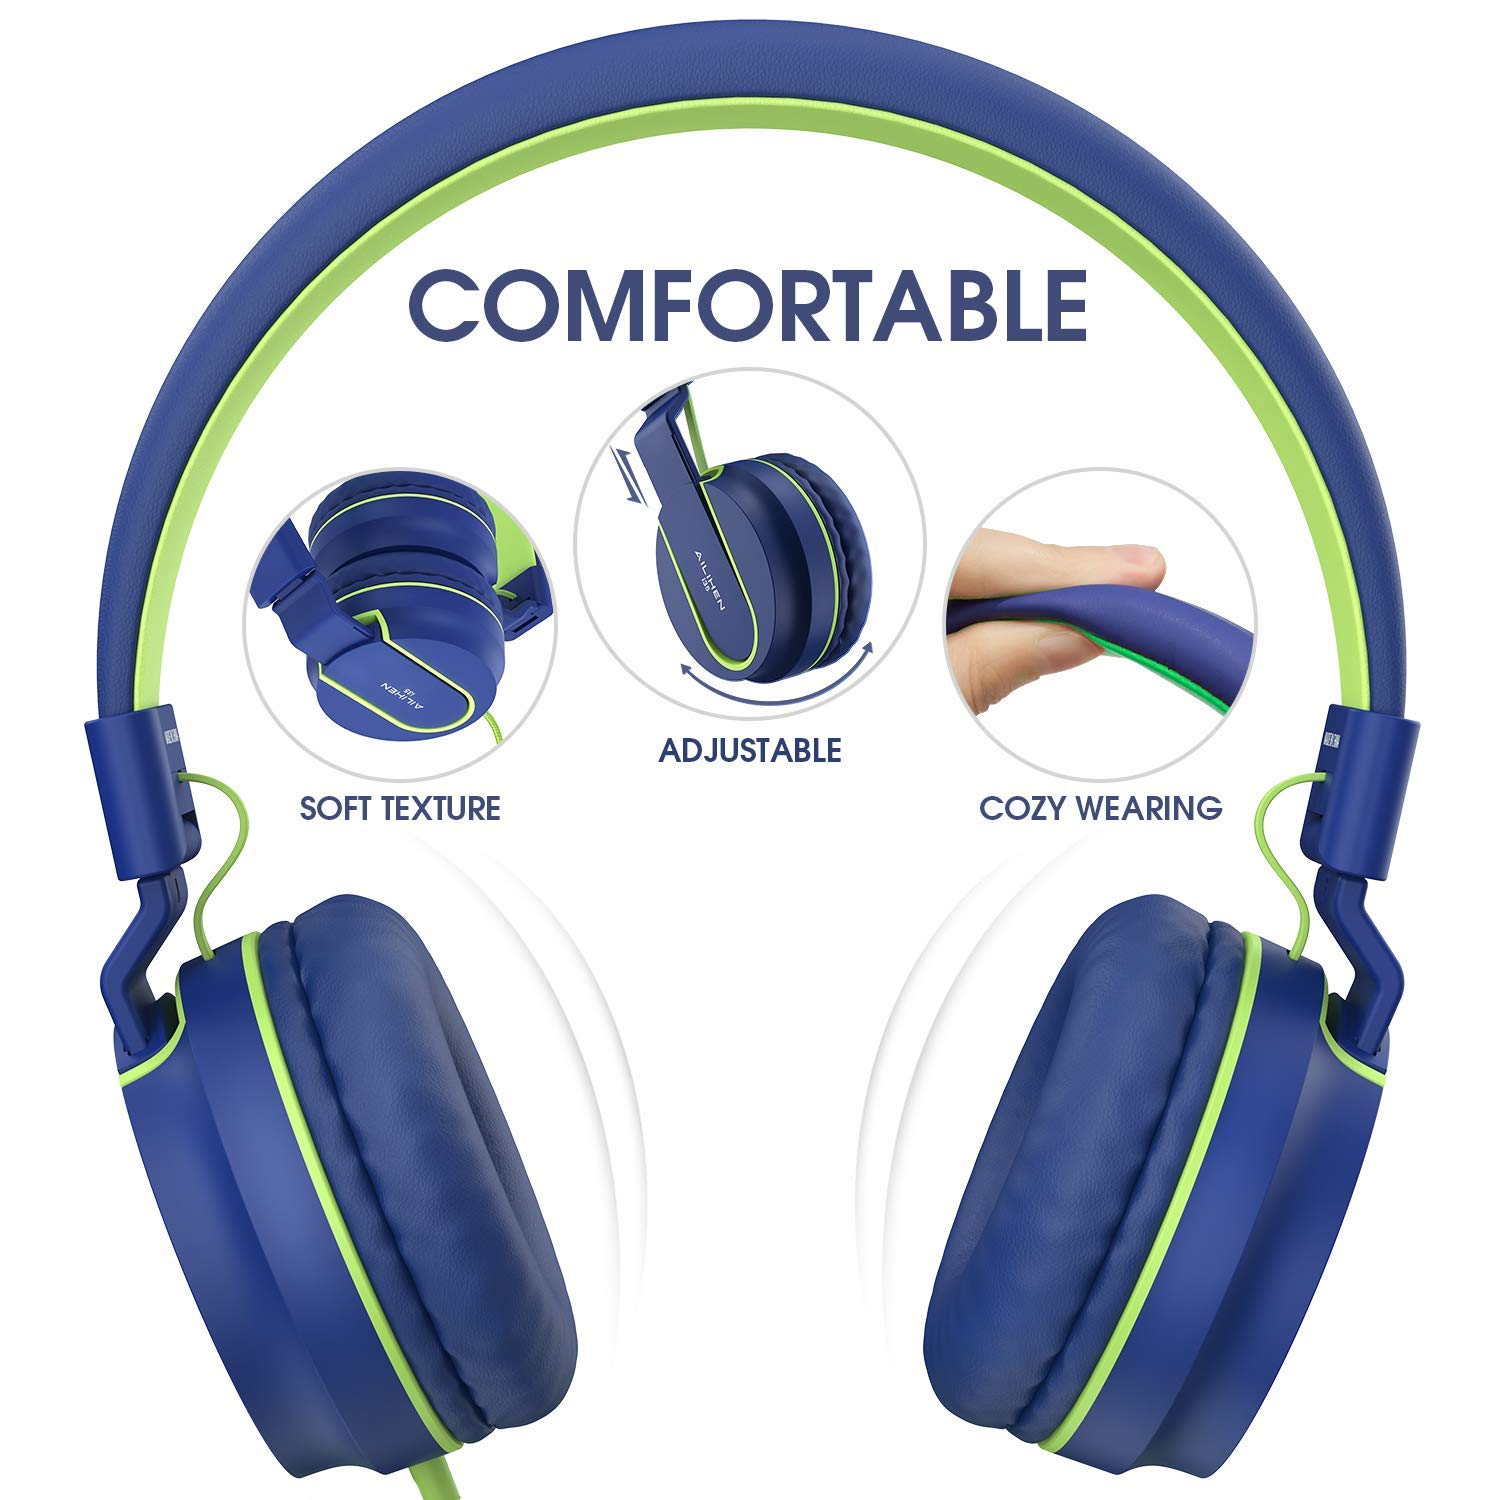 Black//Orange AILIHEN I35 Kid Headphones with Microphone Volume Limited Children Girls Boys Teen Lightweight Foldable Portable Wired Headset for School Airplane Travel Cellphones Tablets Smartphones